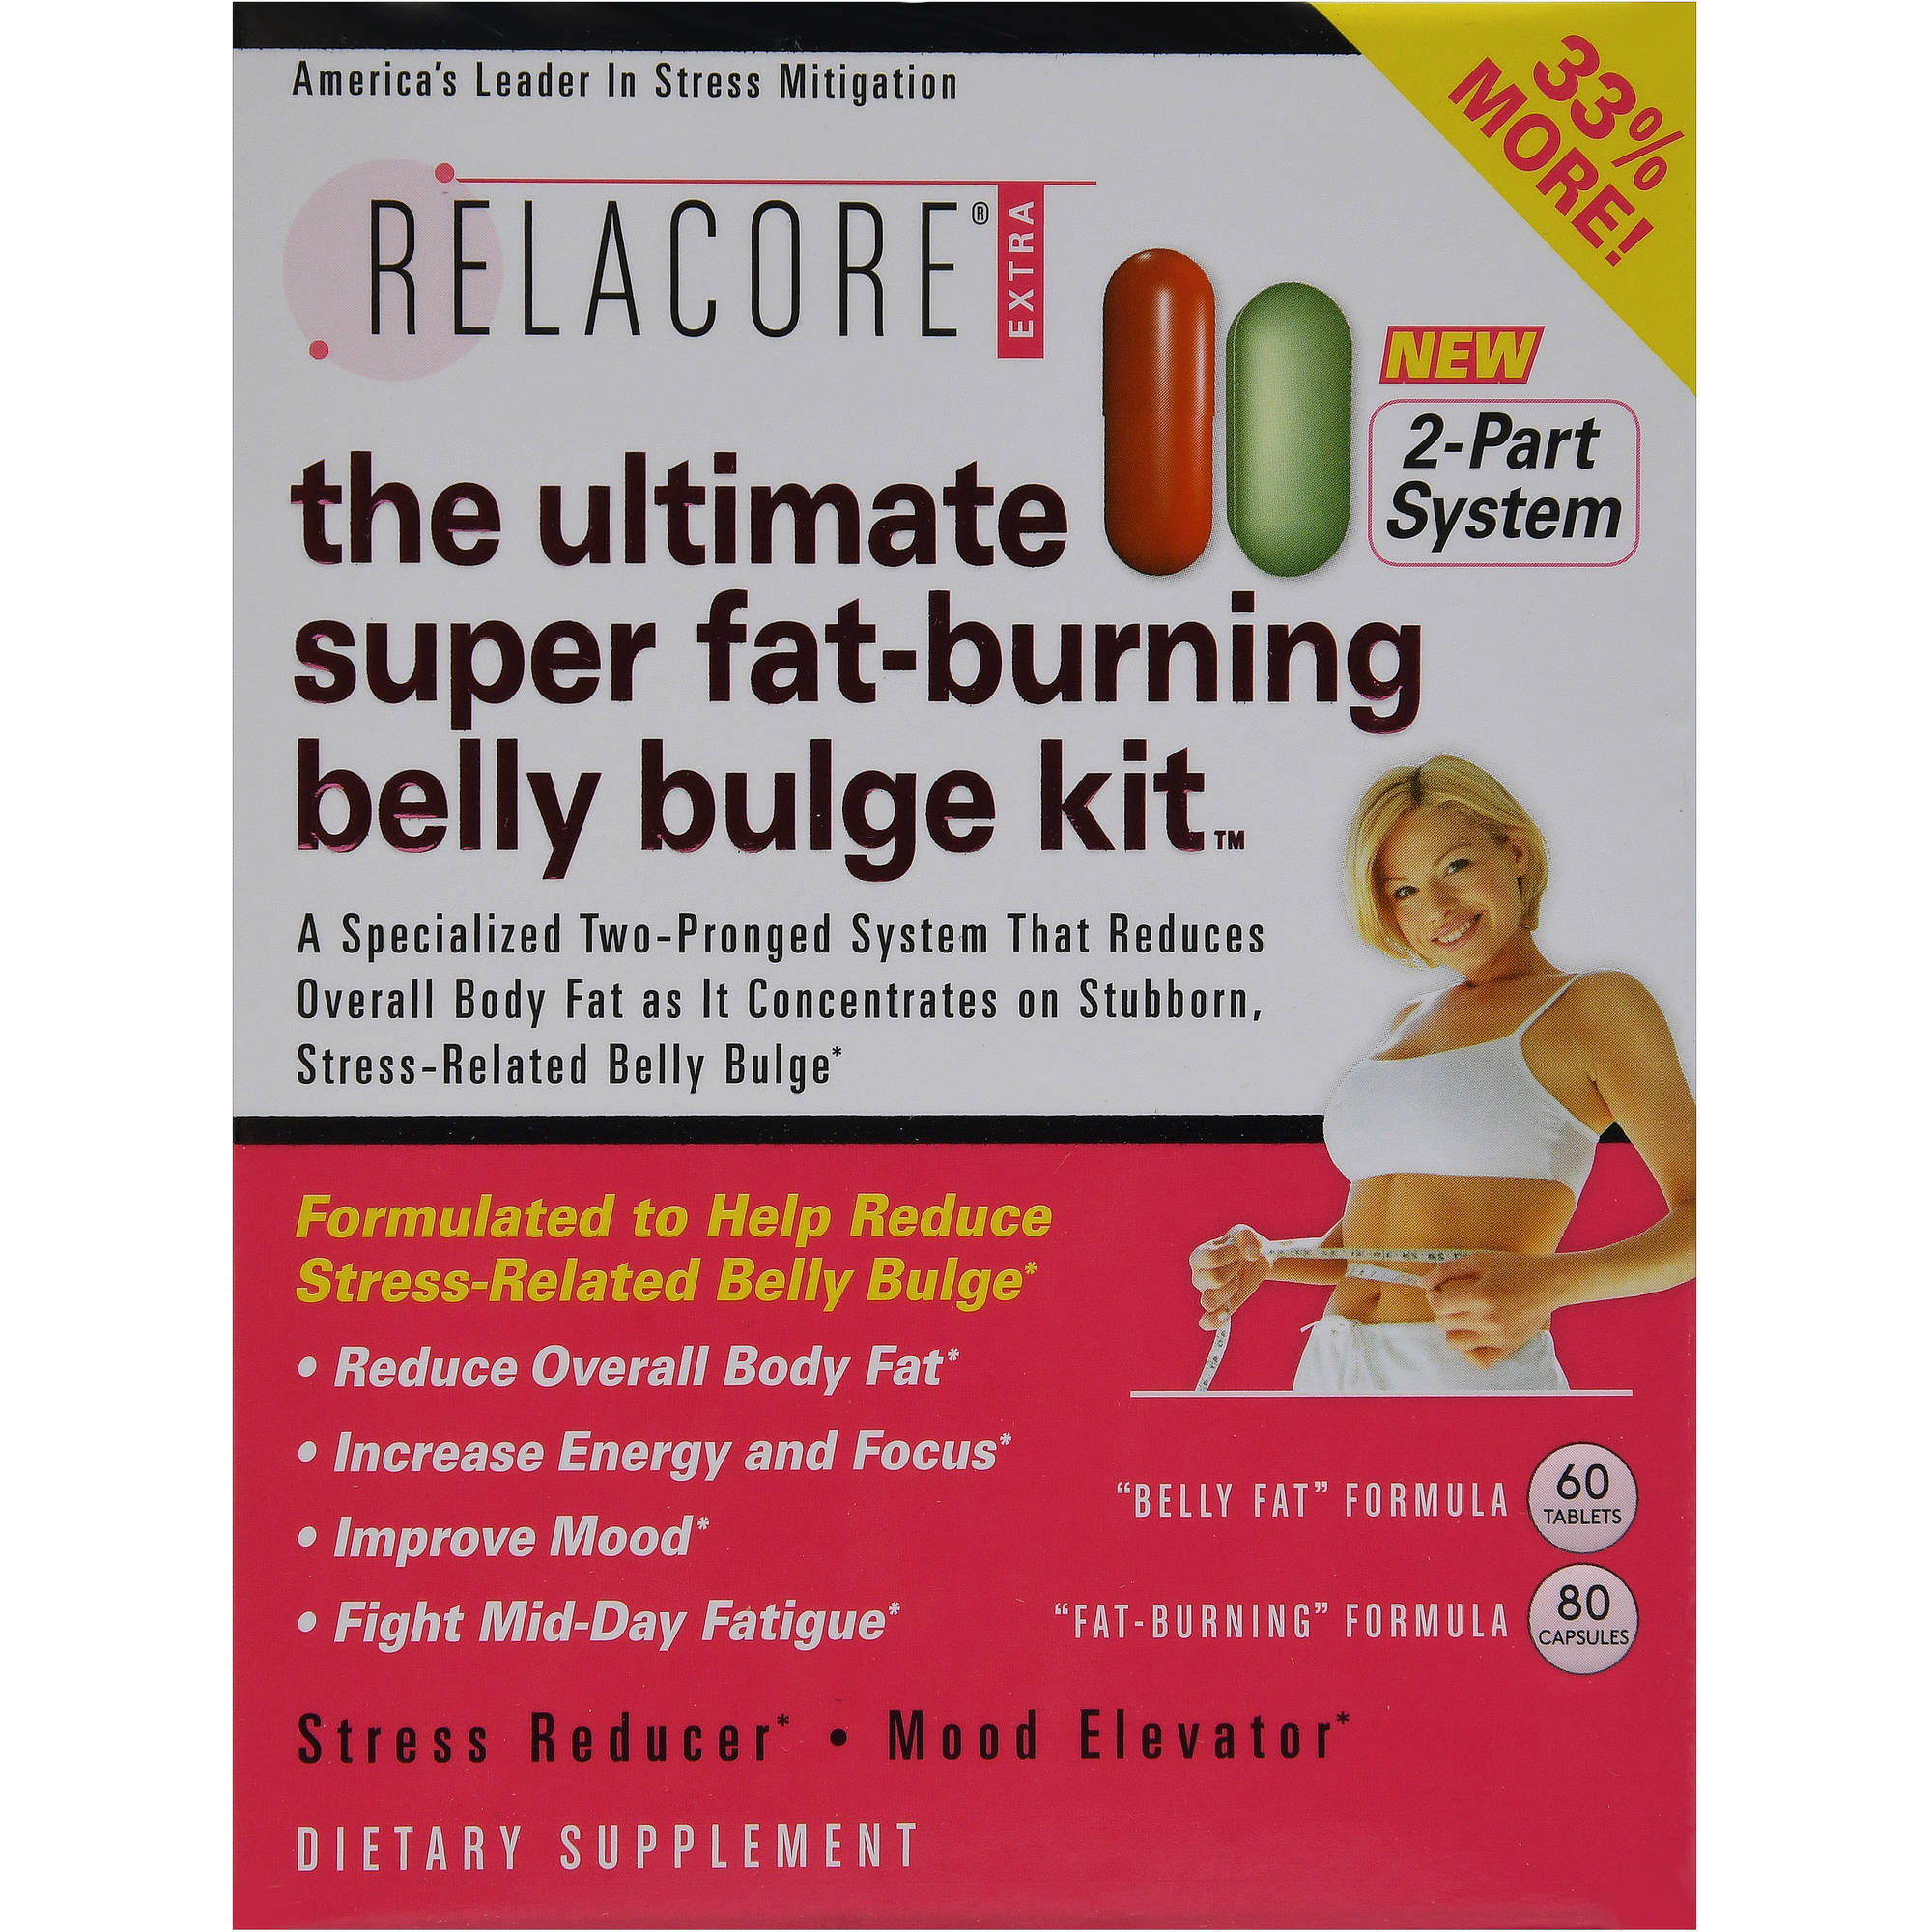 Relacore Extra The Ultimate Super Fat Burning Belly Bulge Kit